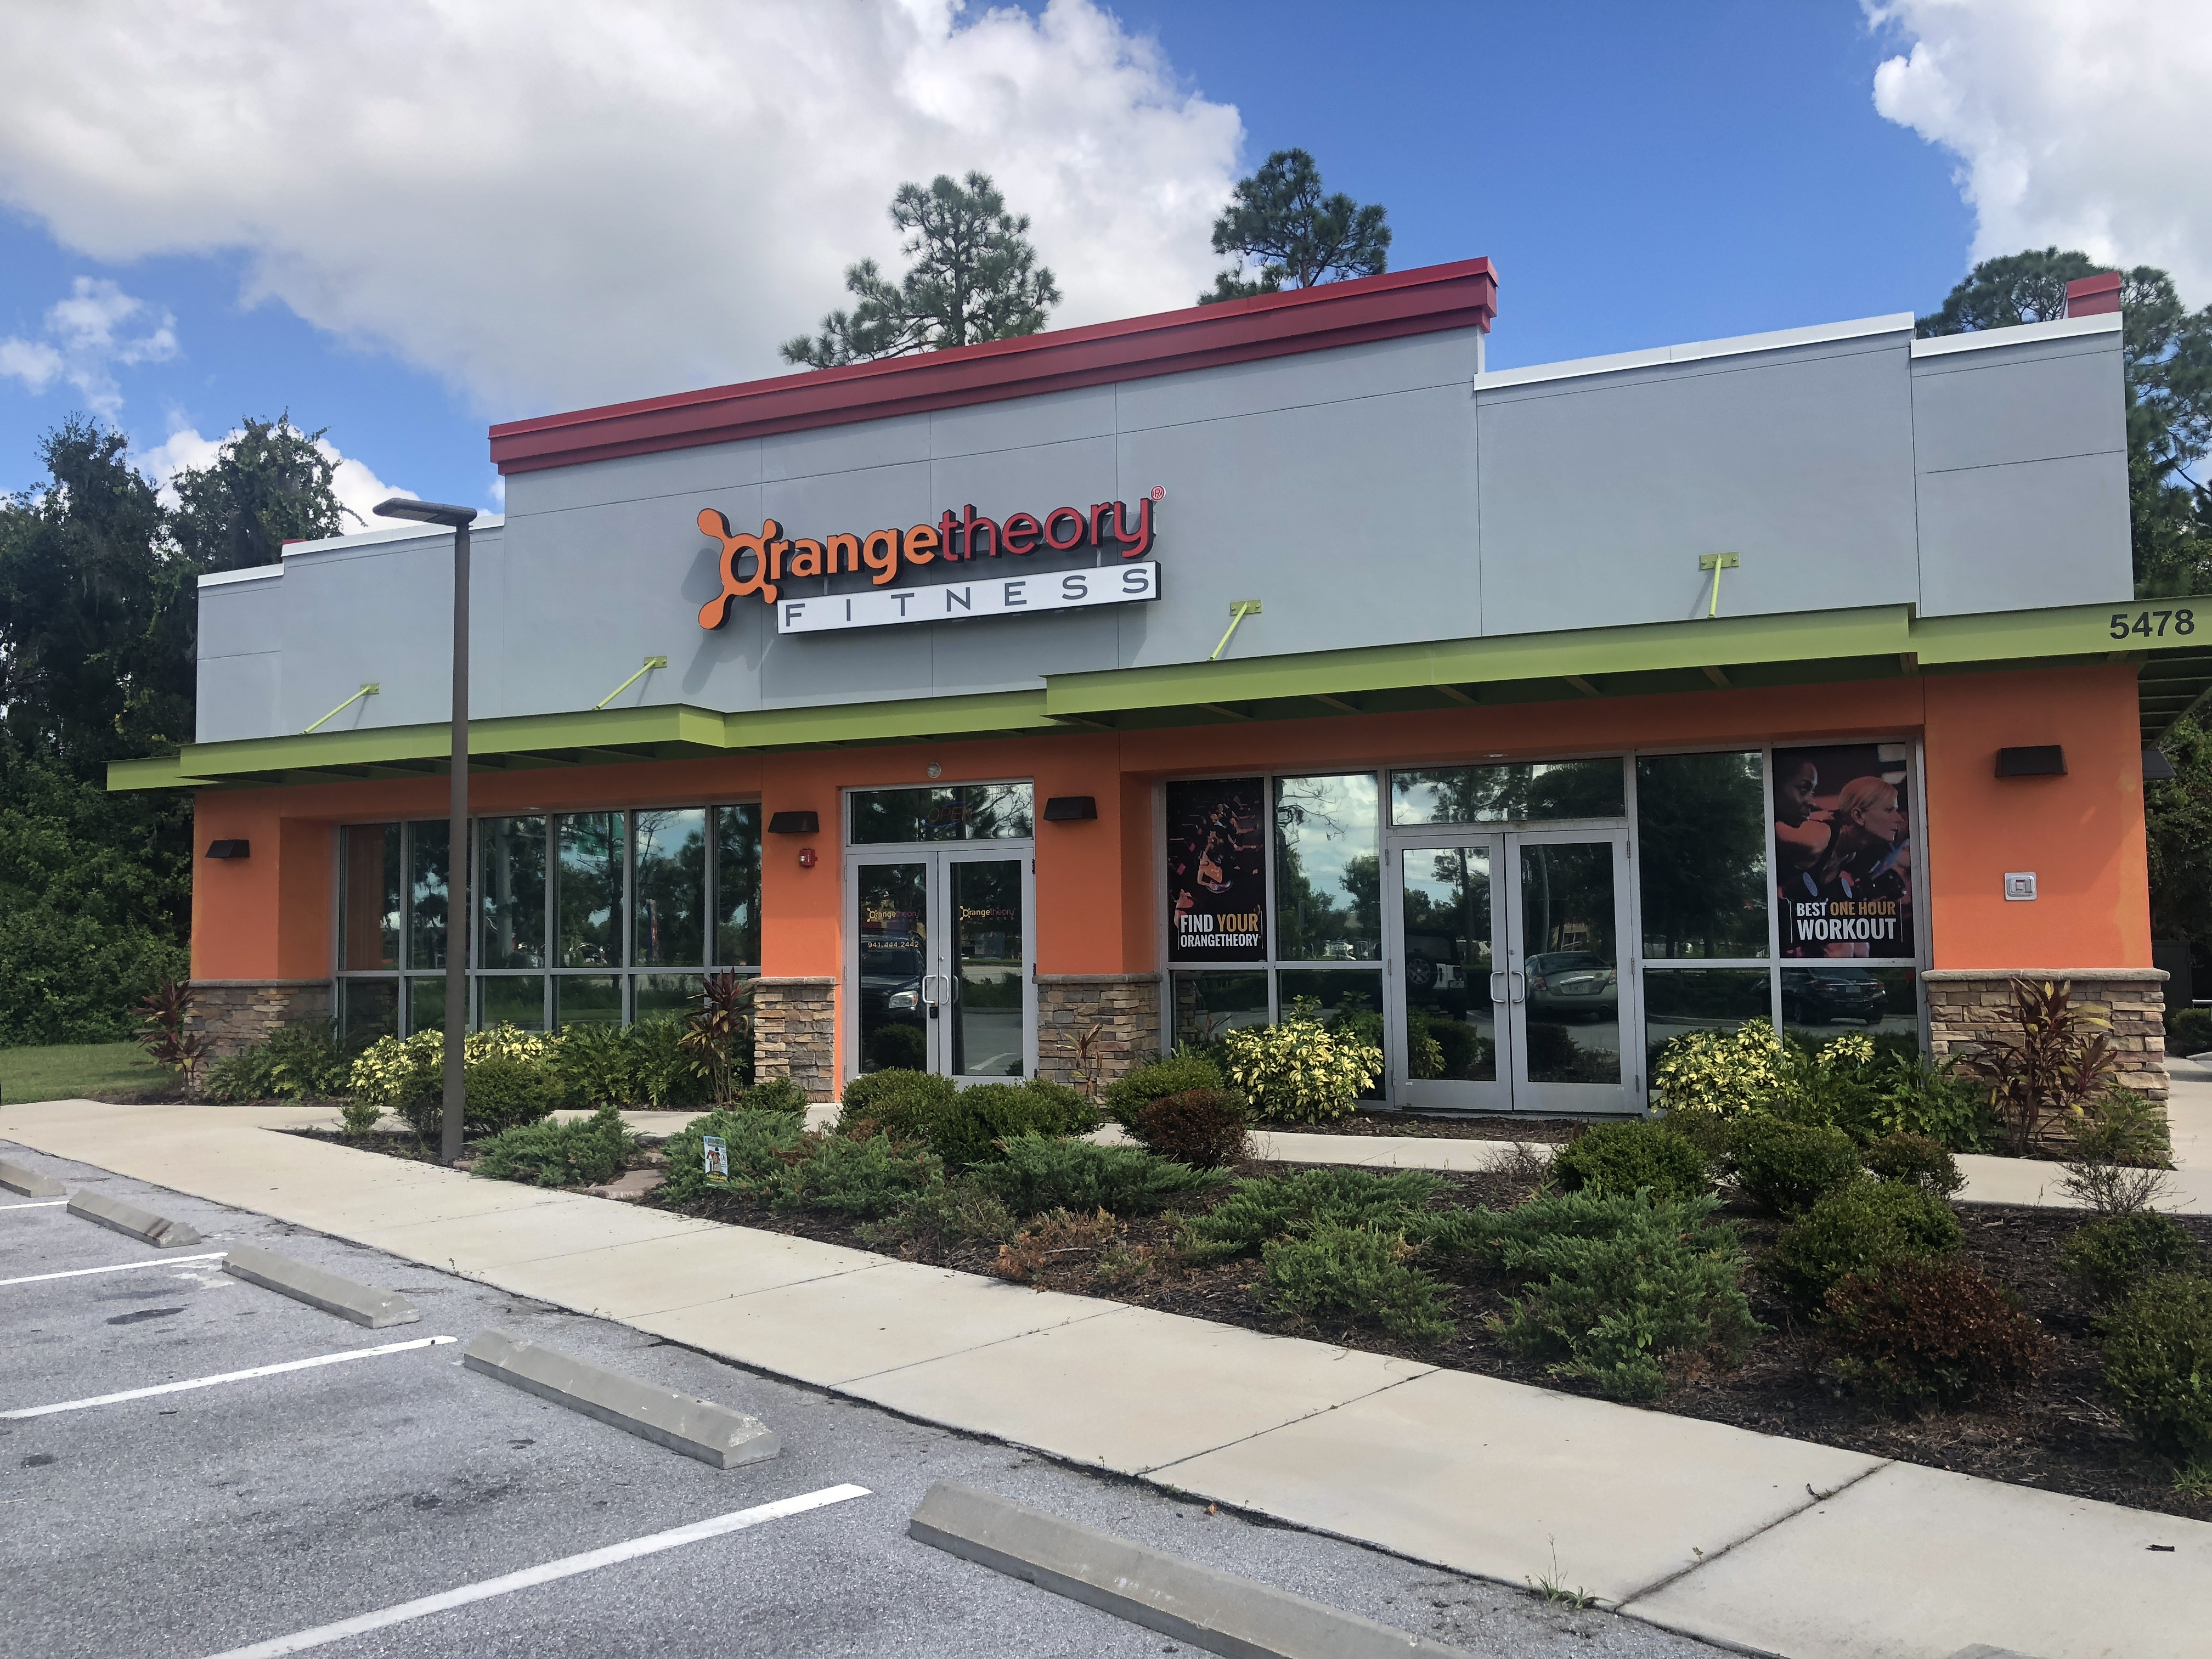 orangetheory fitness review – storefront